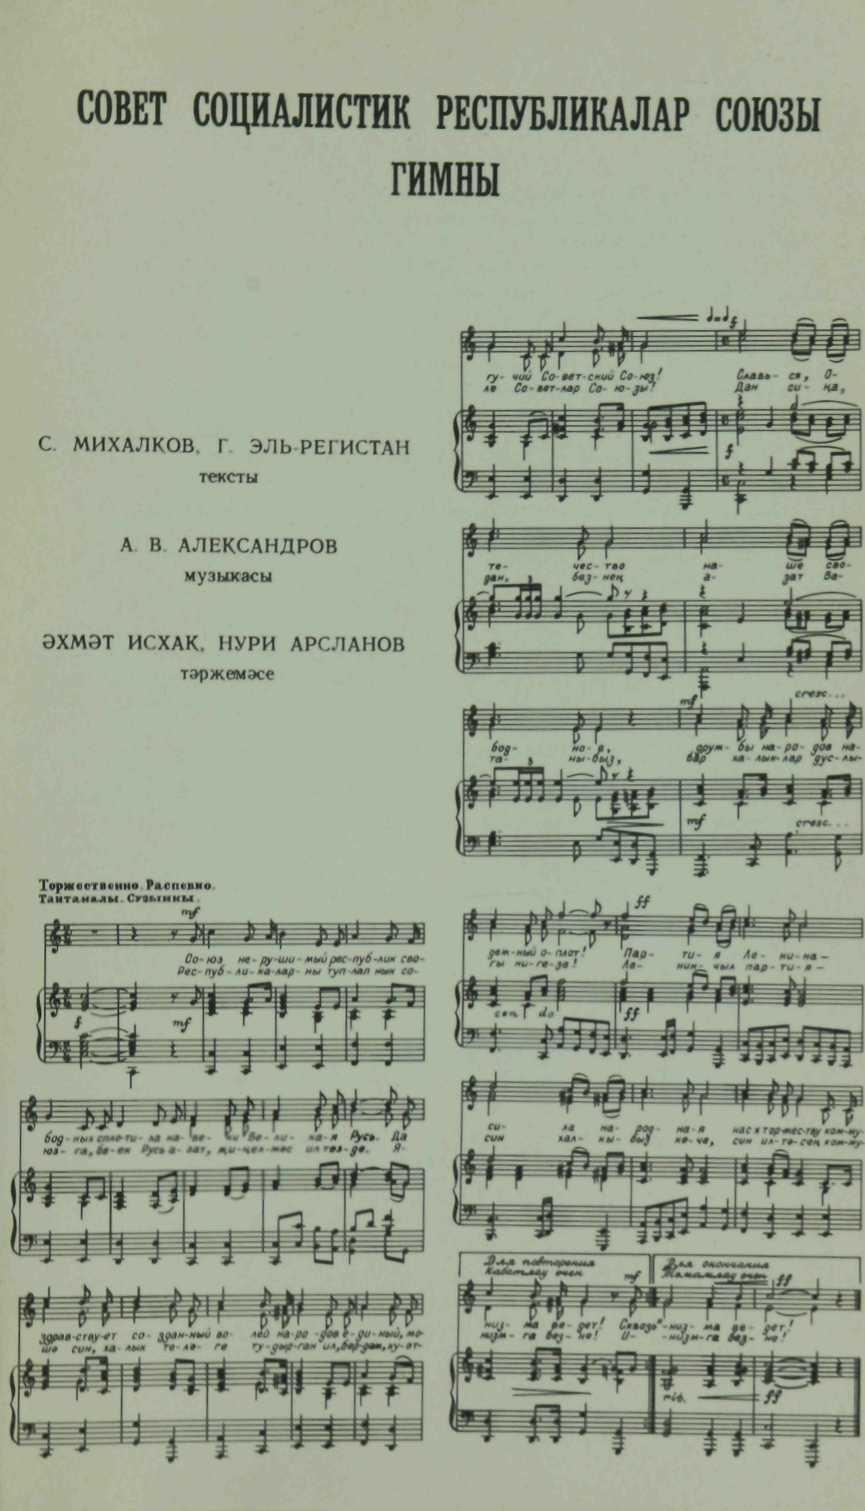 File:Anthem of the Soviet Union - Sheet music in Tatar and